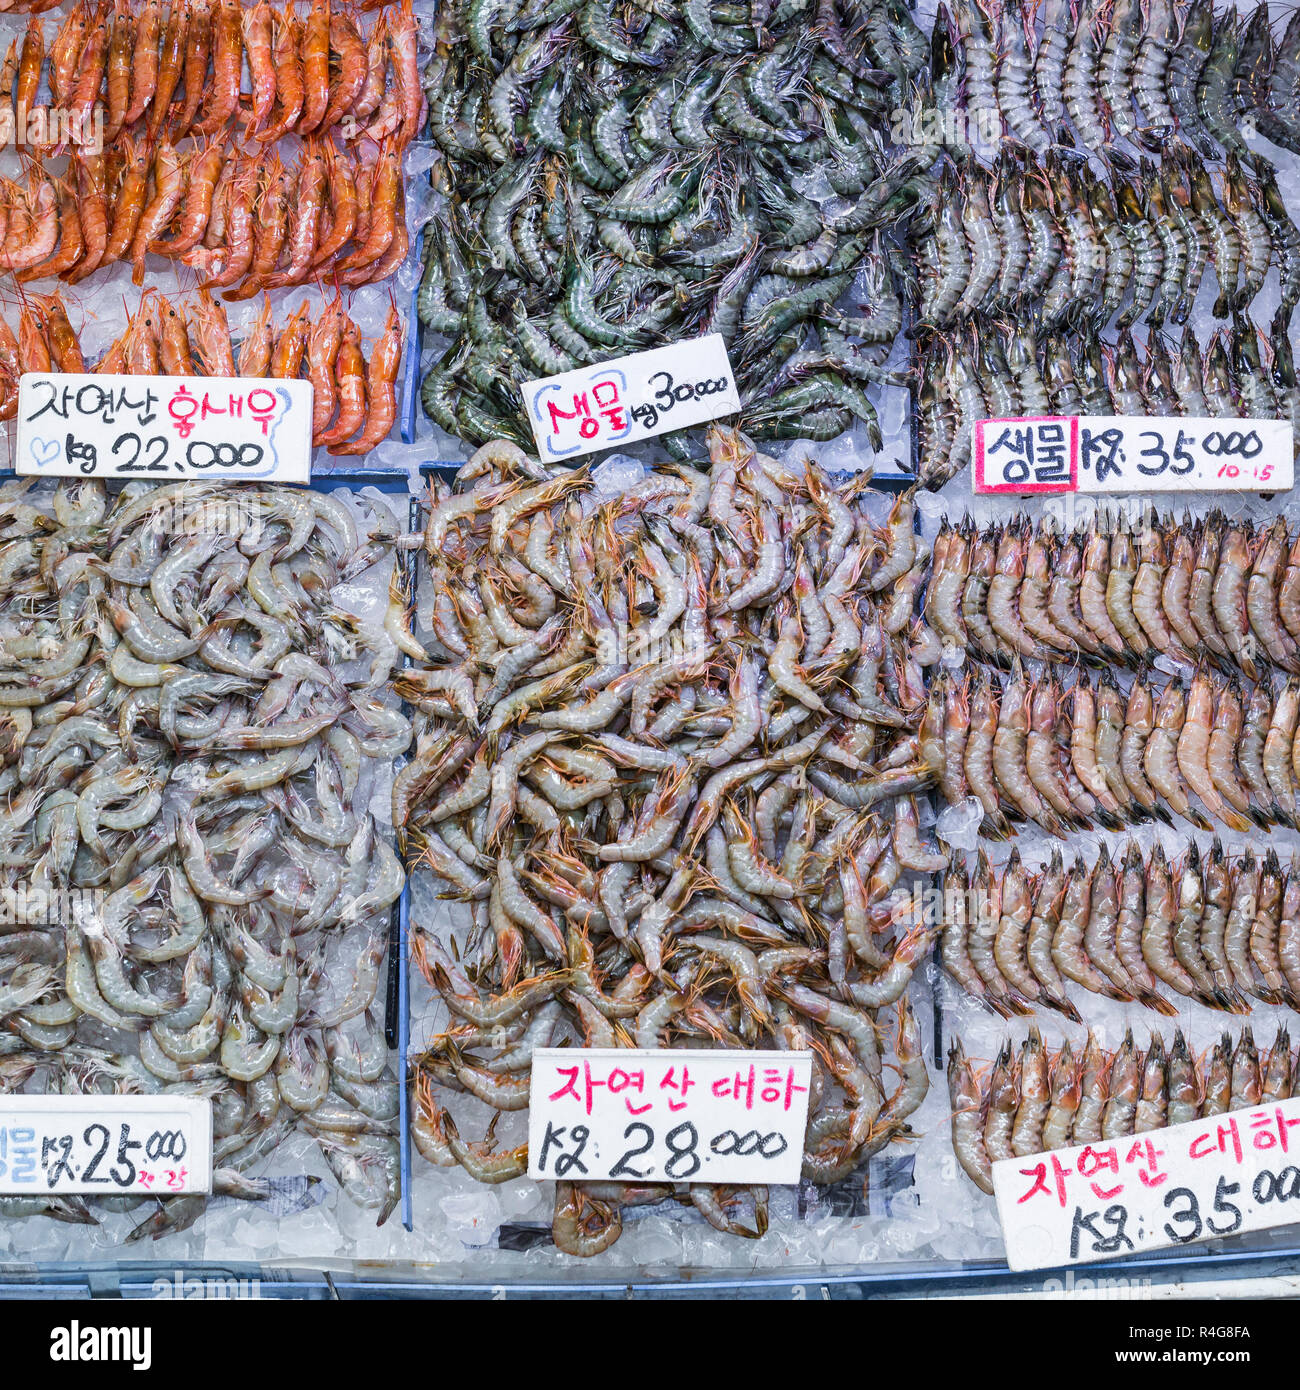 Noryangjin Fisheries Wholesale Market , Expansive wholesale & retail market with stalls offering hundreds of types of fish & seafood. Stock Photo